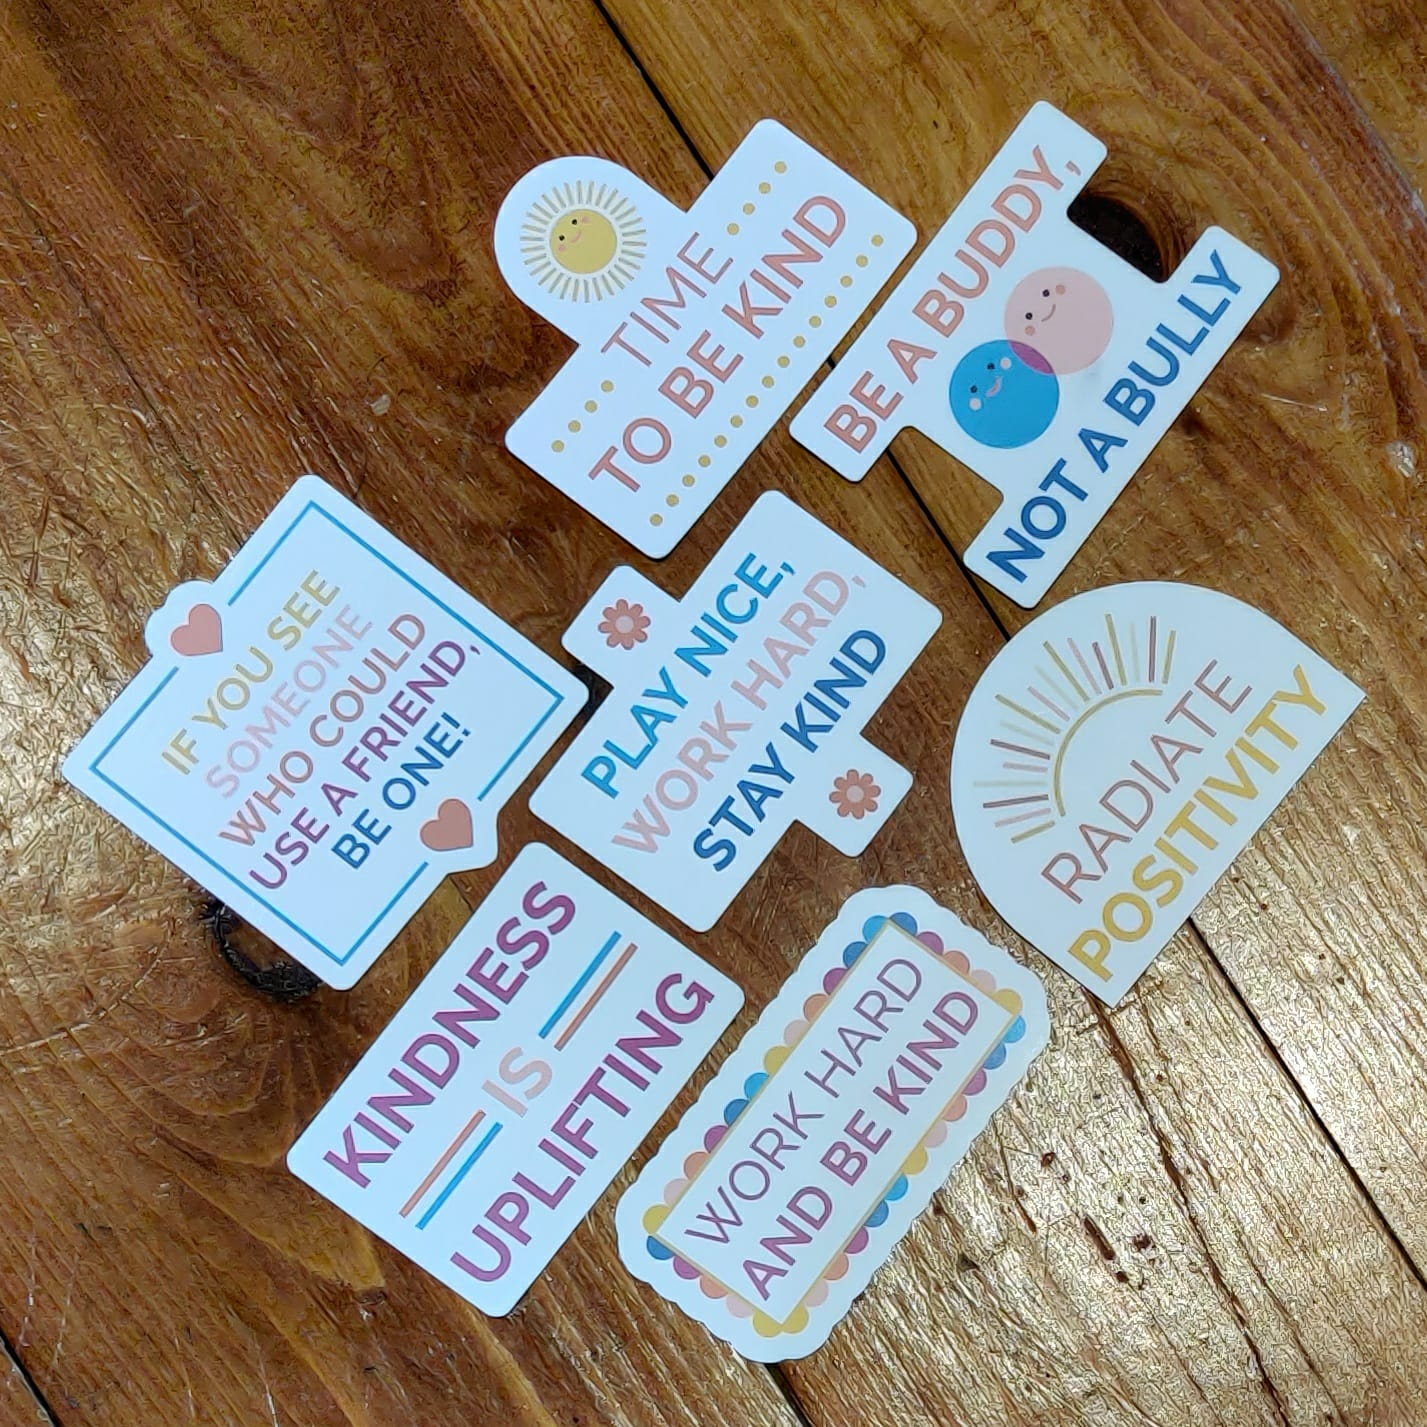 Kindness Positive Stickers   Mental Health Support   Positive Reminder   Encouragement   Positive Stickers   Anxiety   Charity Donation Kind Shop